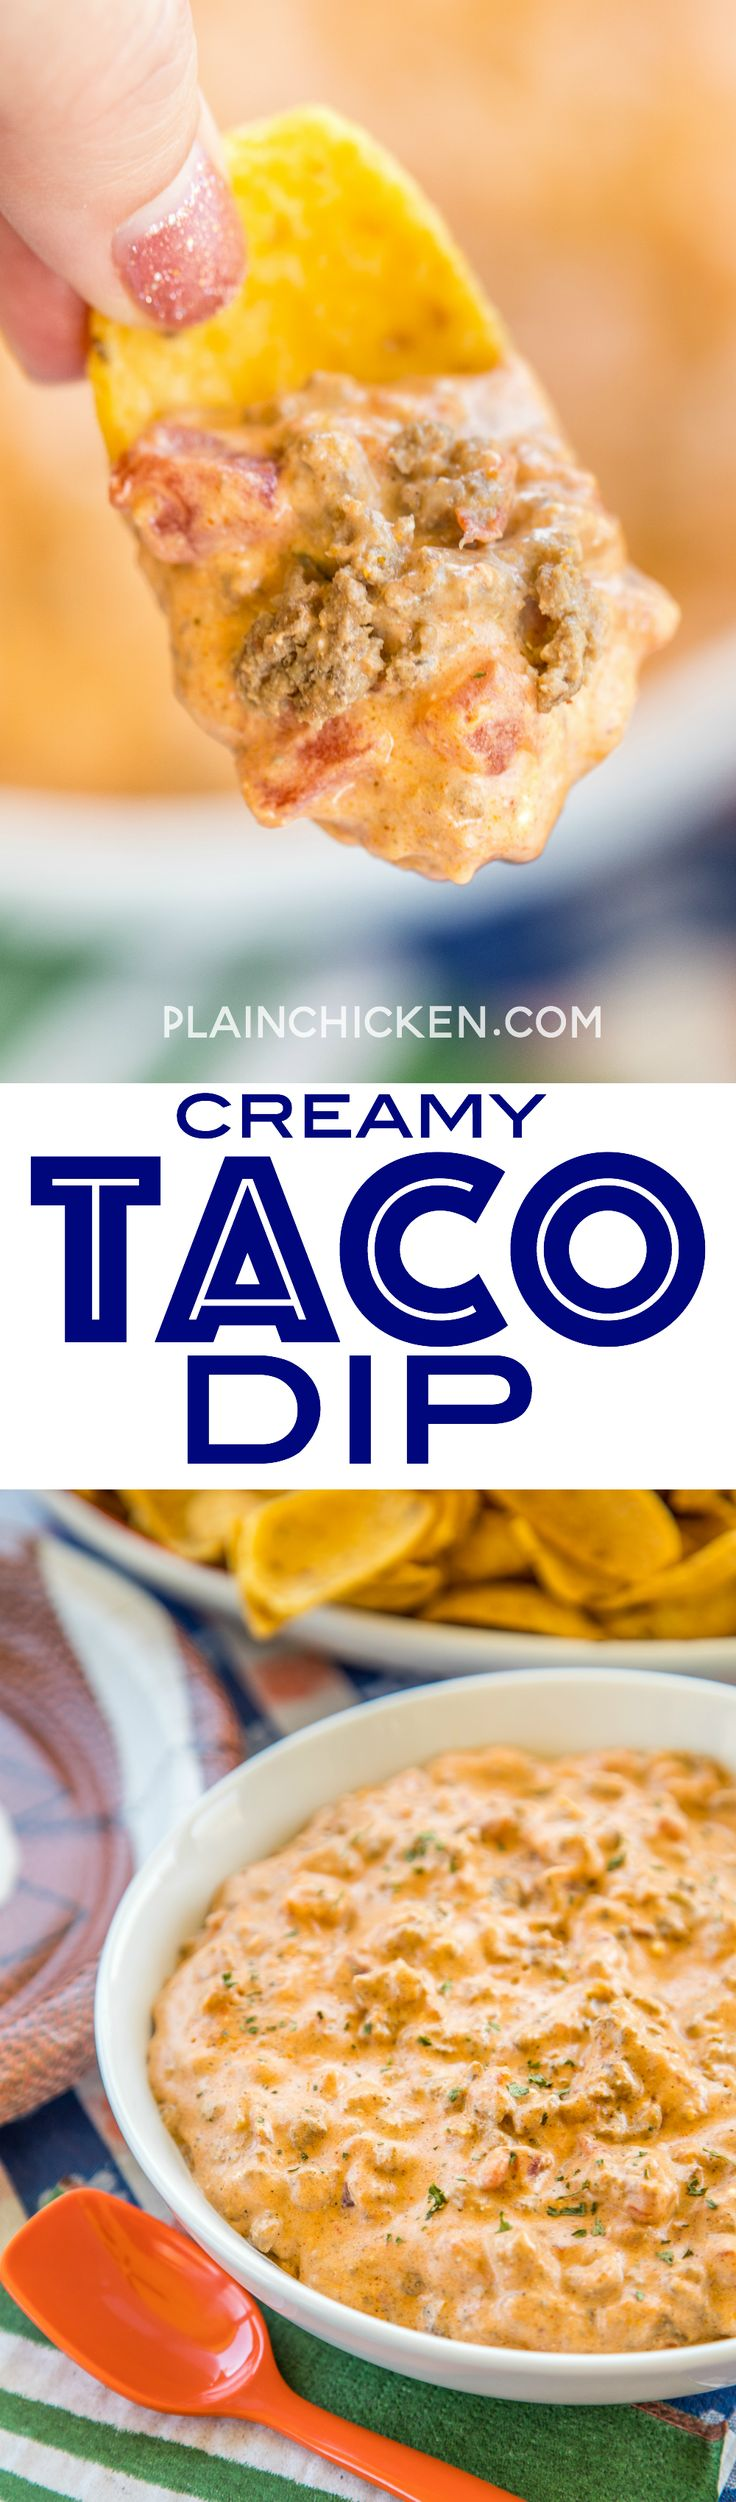 Creamy Taco Dip - only 4 ingredients and it's ready in 5 minutes!!! People go nuts over this easy Mexican dip recipe!! Serve with Fritos, tortilla scoops, celery or bell pepper slices. You might want to double the recipe, this is always the first thing to go!! Great for parties and tailgating.